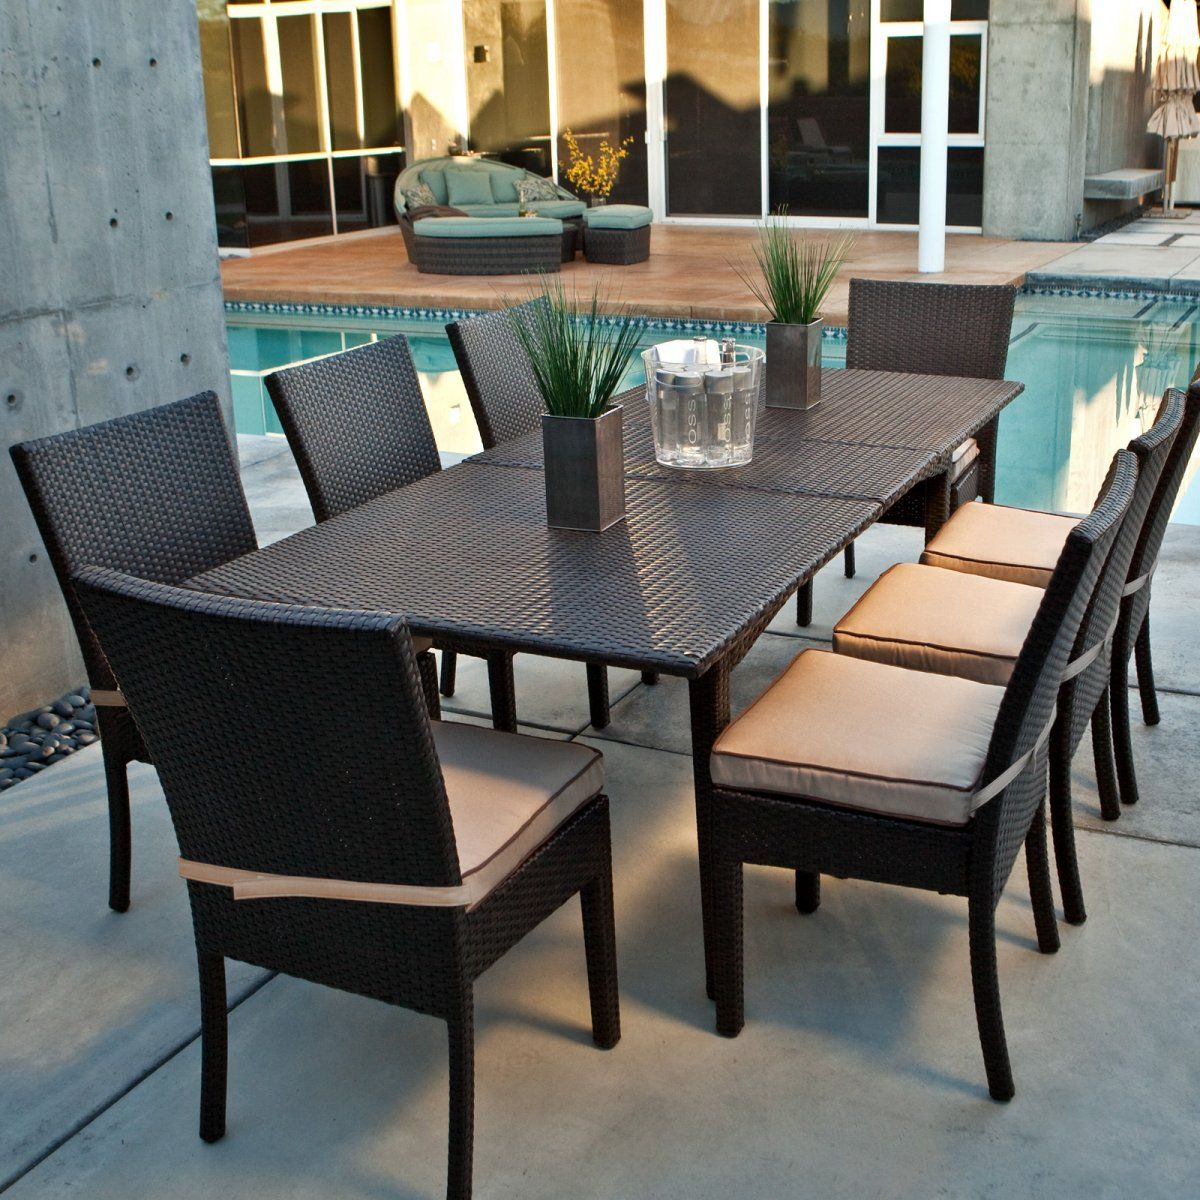 Contemporary Outdoor Dining Furniture: Modern Outdoor Dining Furniture